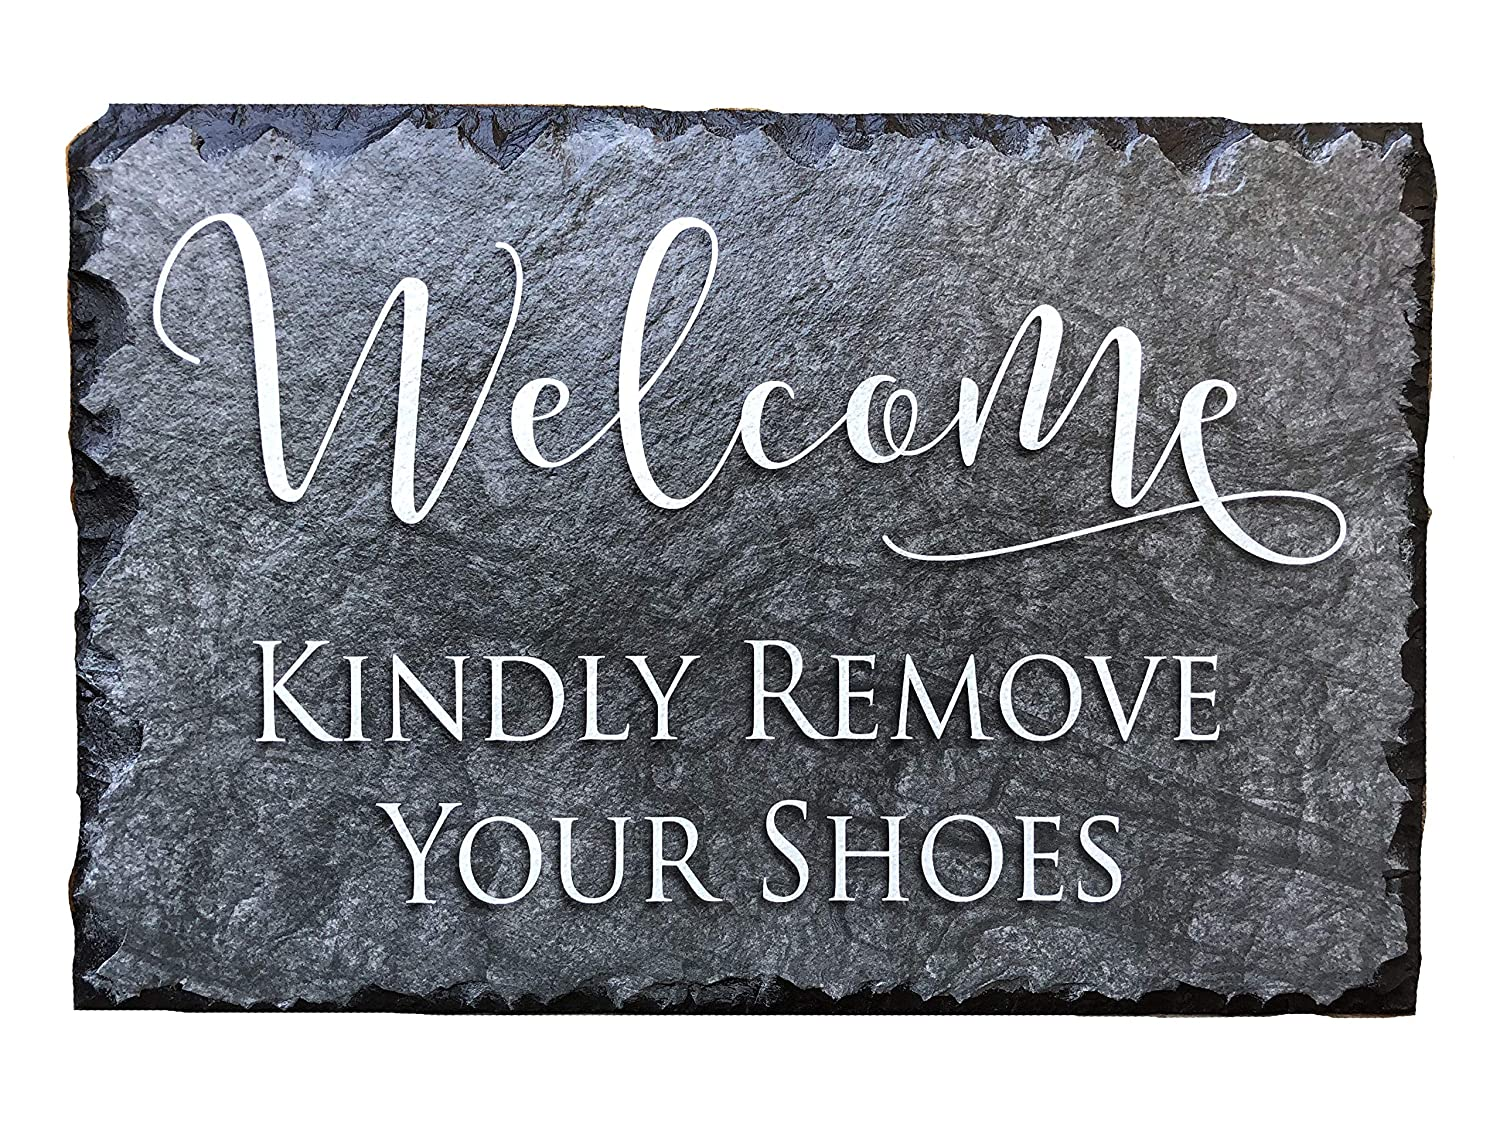 Sassy Squirrel Handcrafted Slate House Sign - Kindly Remove Your Shoes (12x8) Sassy Squirrel Ink 614405527293